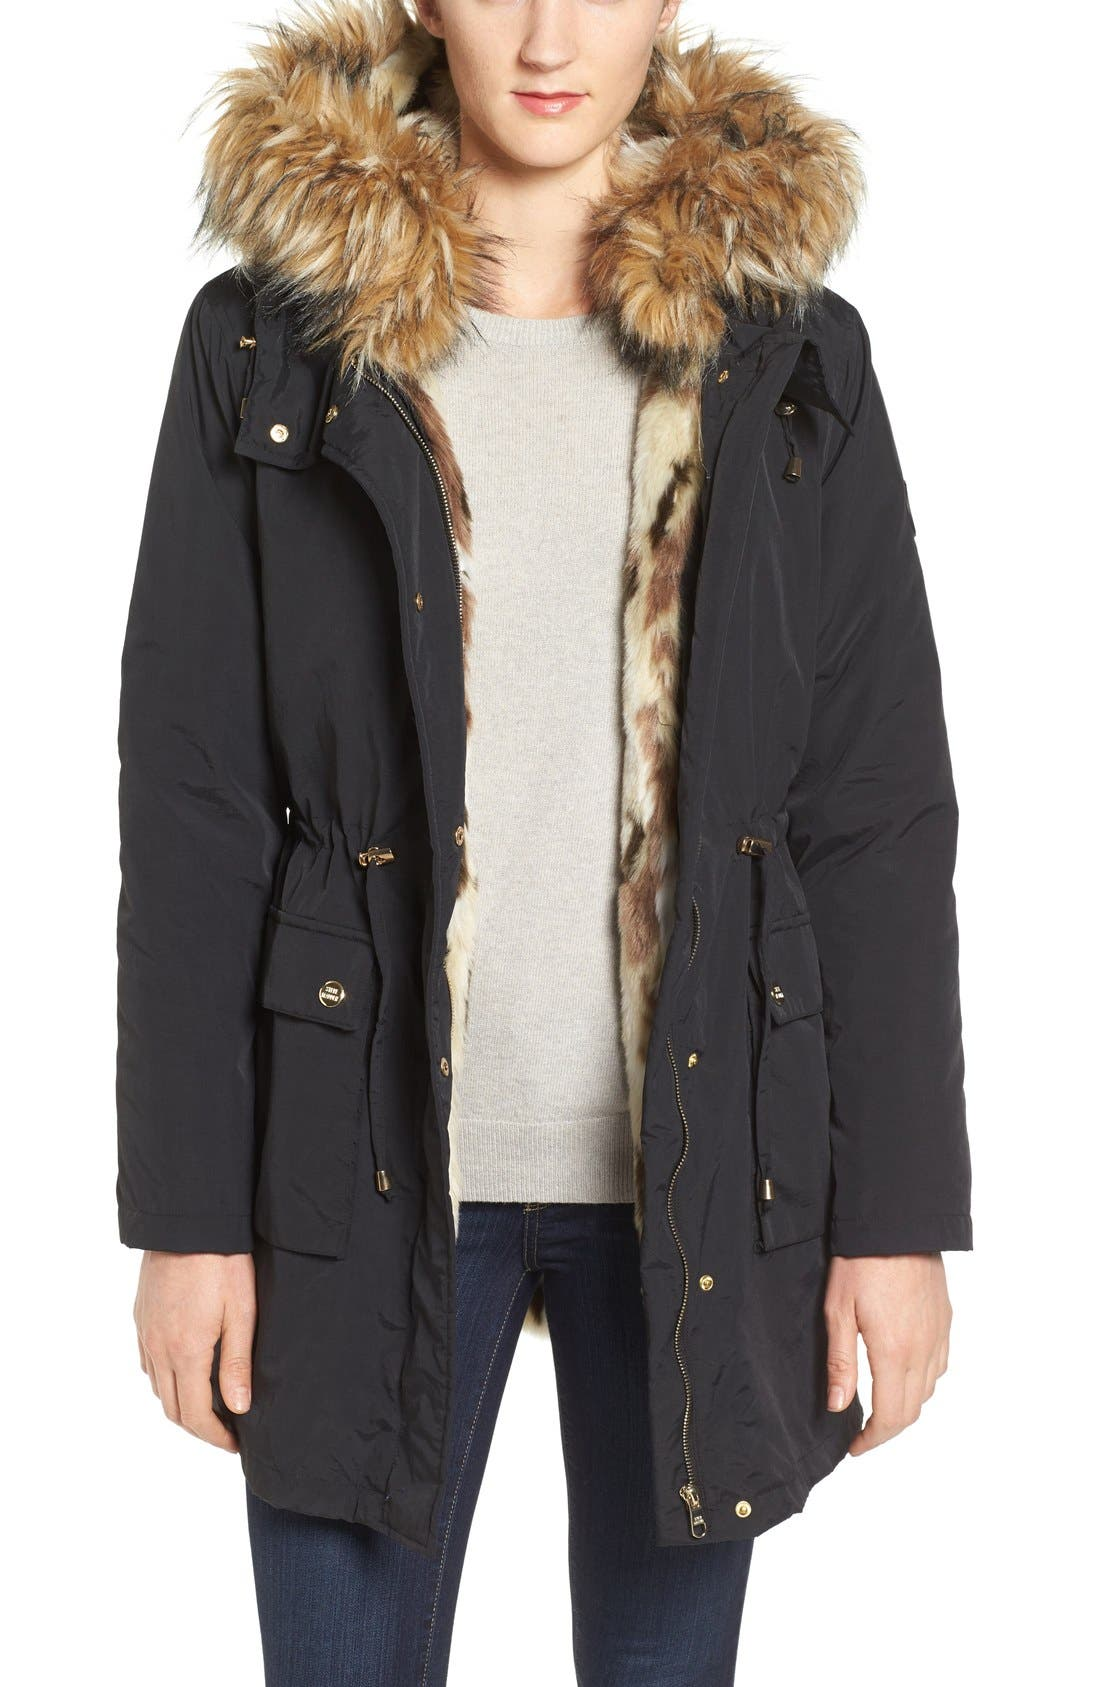 Alternate Image 1 Selected - Steve Madden 'Taslon' Parka with Faux-Fur Trim Hood